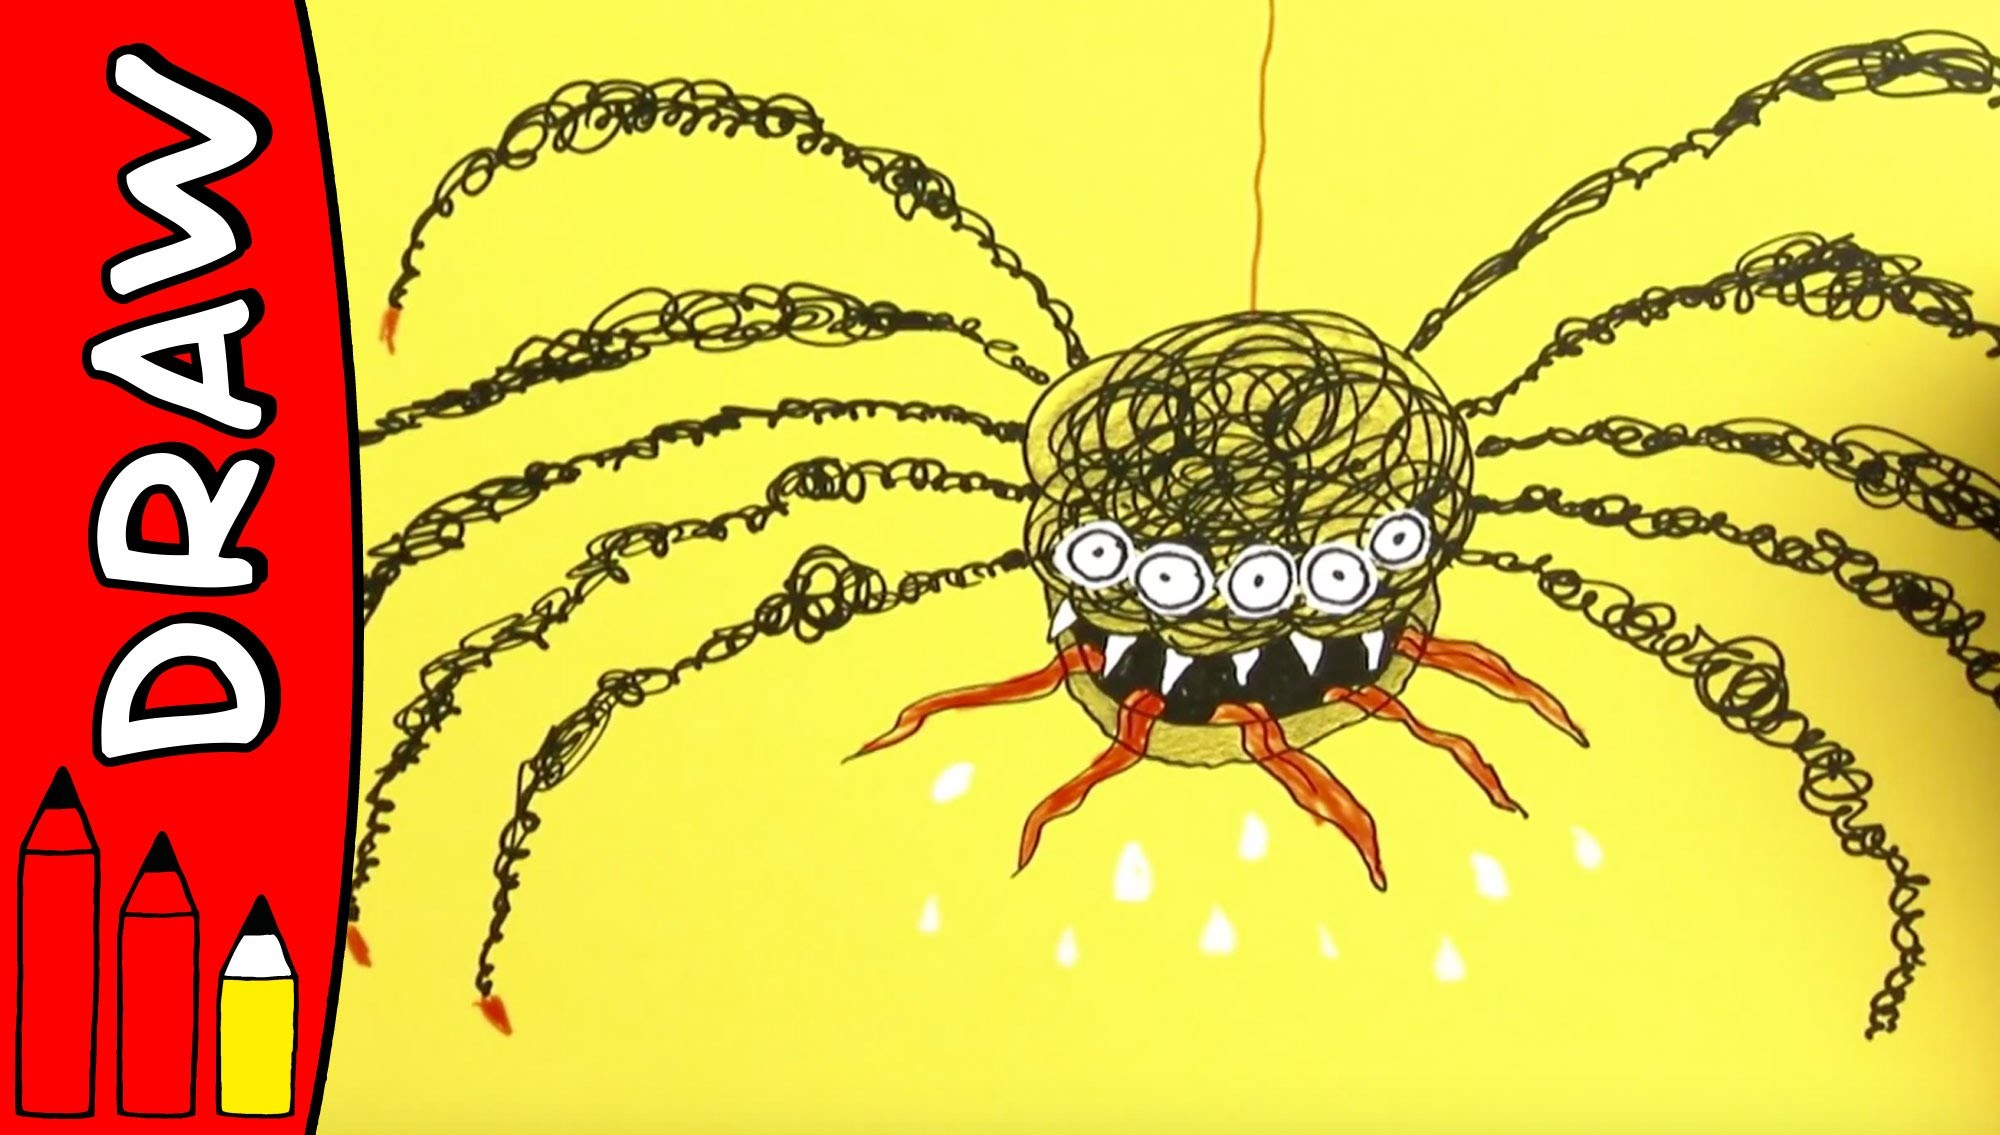 How To Draw A Spider | Halloween Ideas For Kids | Øistein Kristiansen